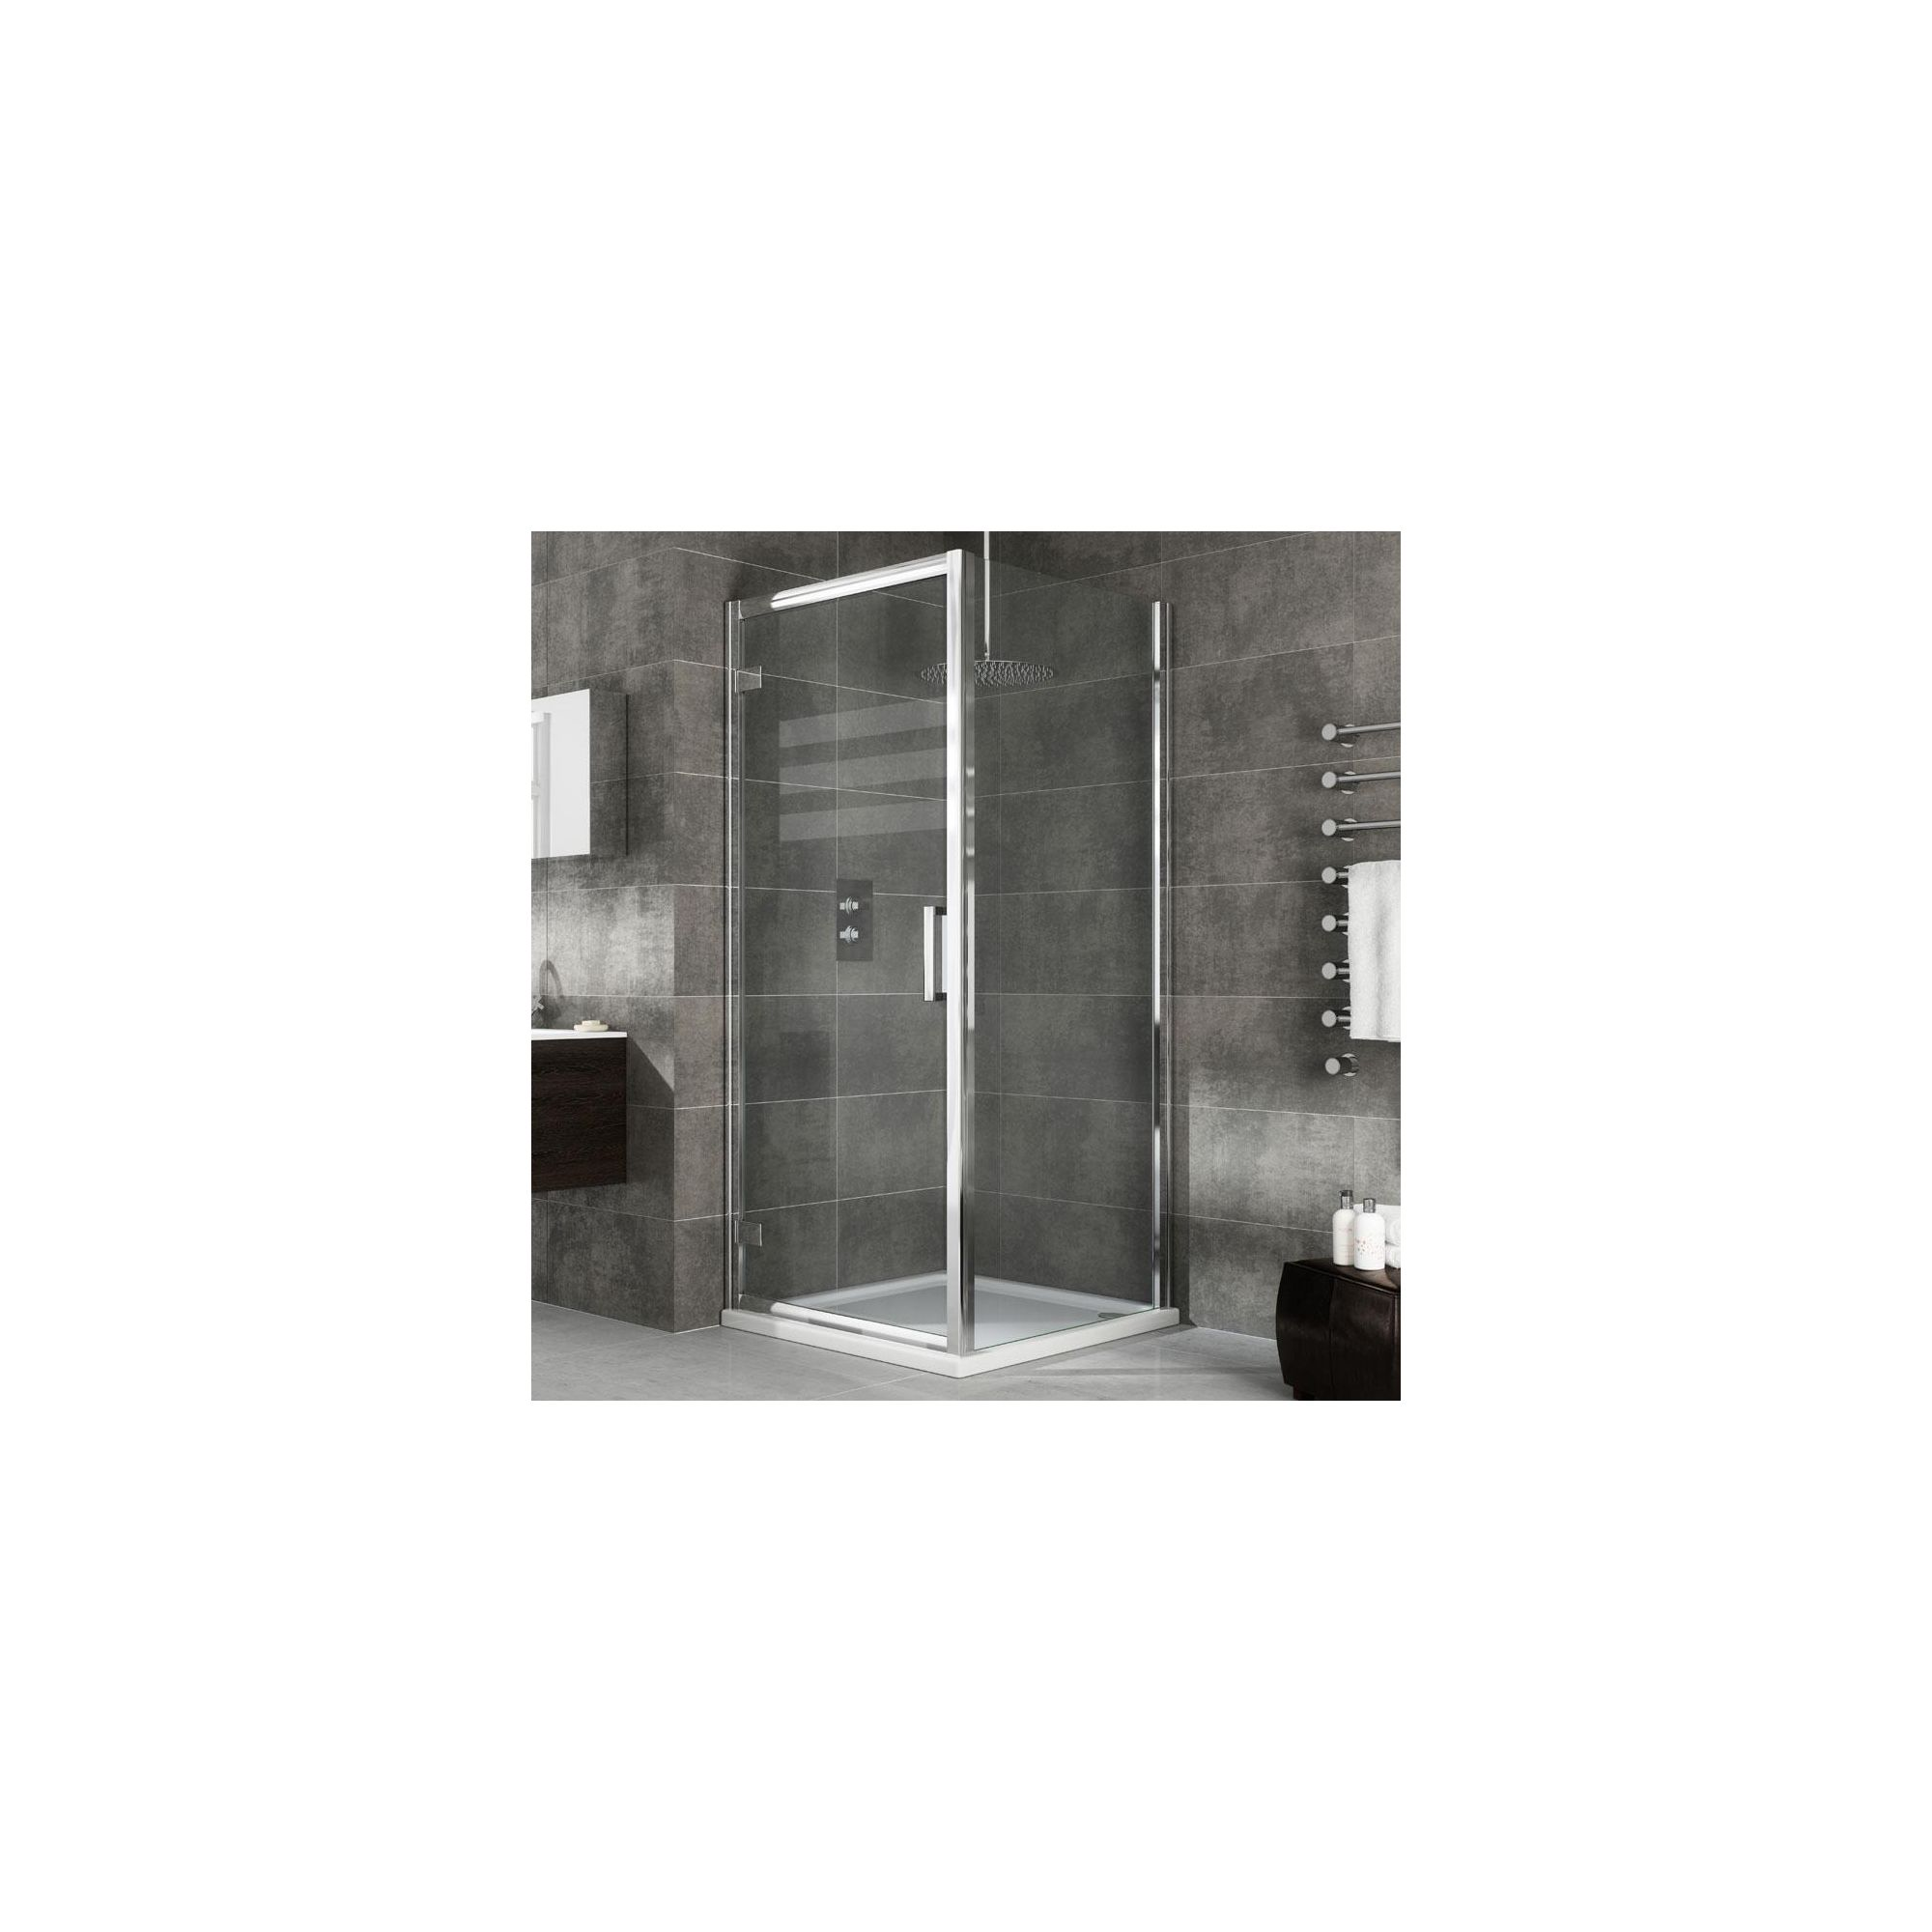 Elemis Eternity Hinged Door Shower Enclosure, 1000mm x 800mm, 8mm Glass, Low Profile Tray at Tesco Direct